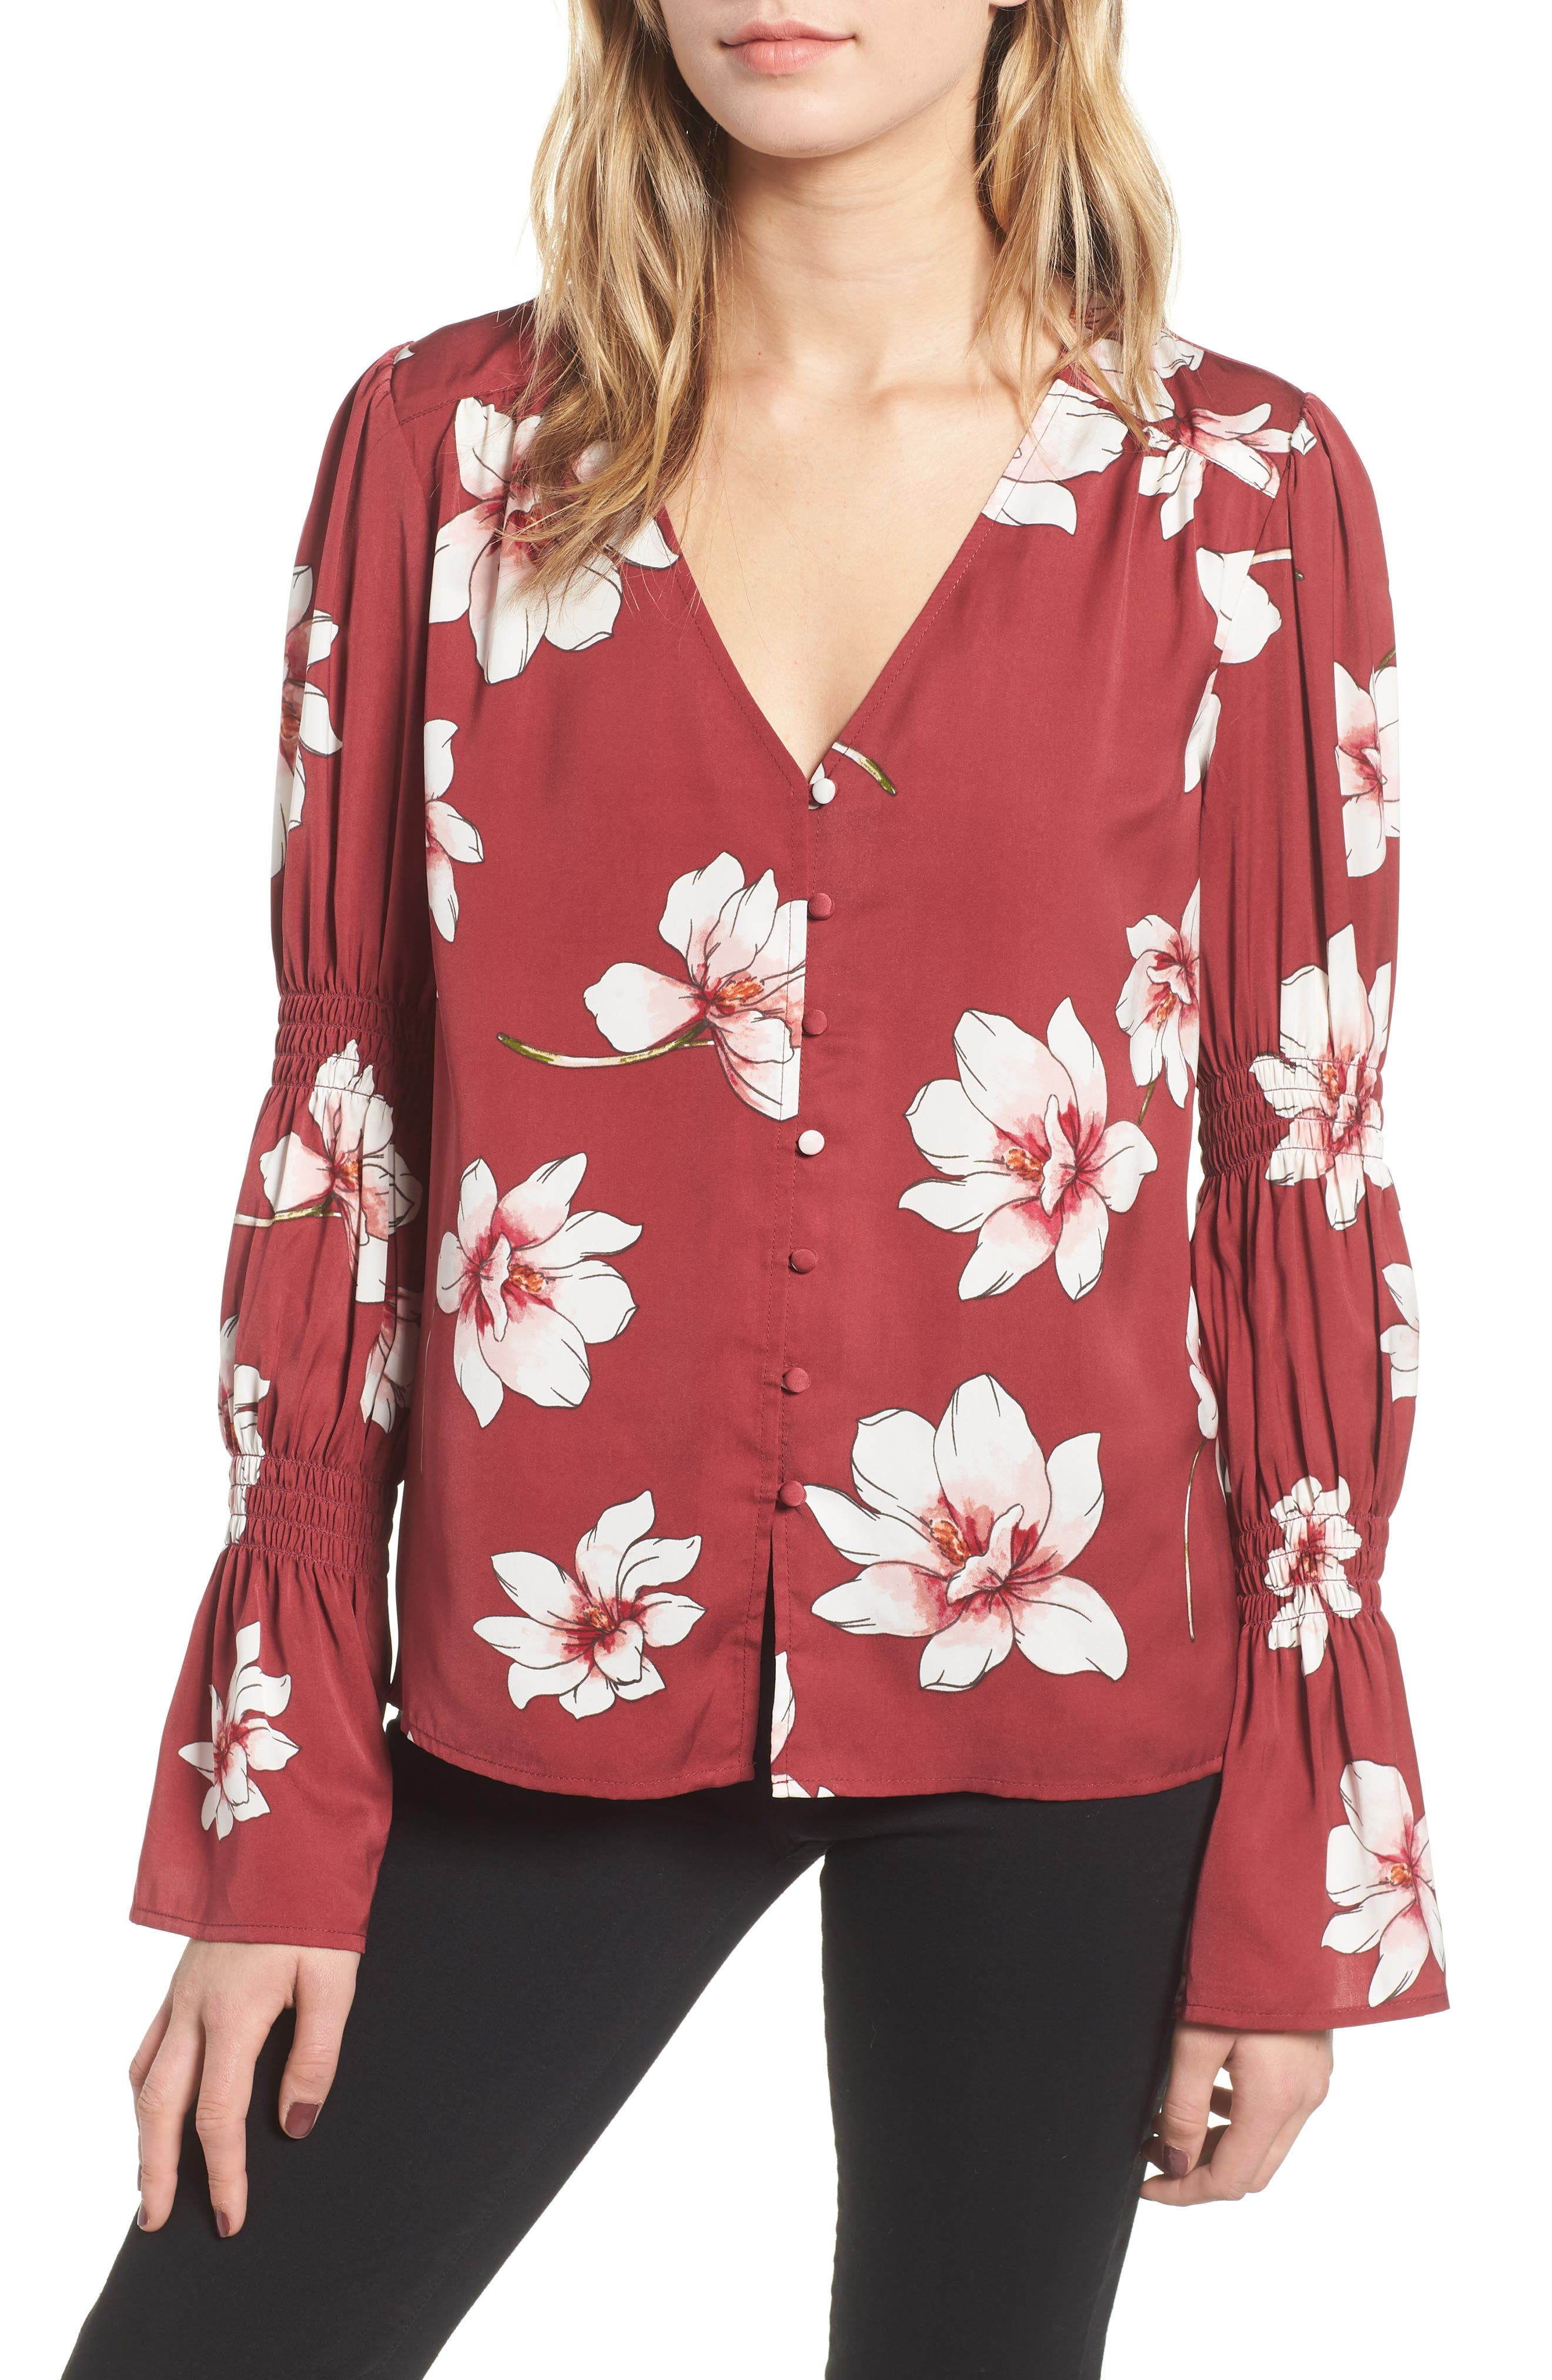 CUPCAKES AND CASHMERE Christa Floral-Print Button-Down Top in Earth Red